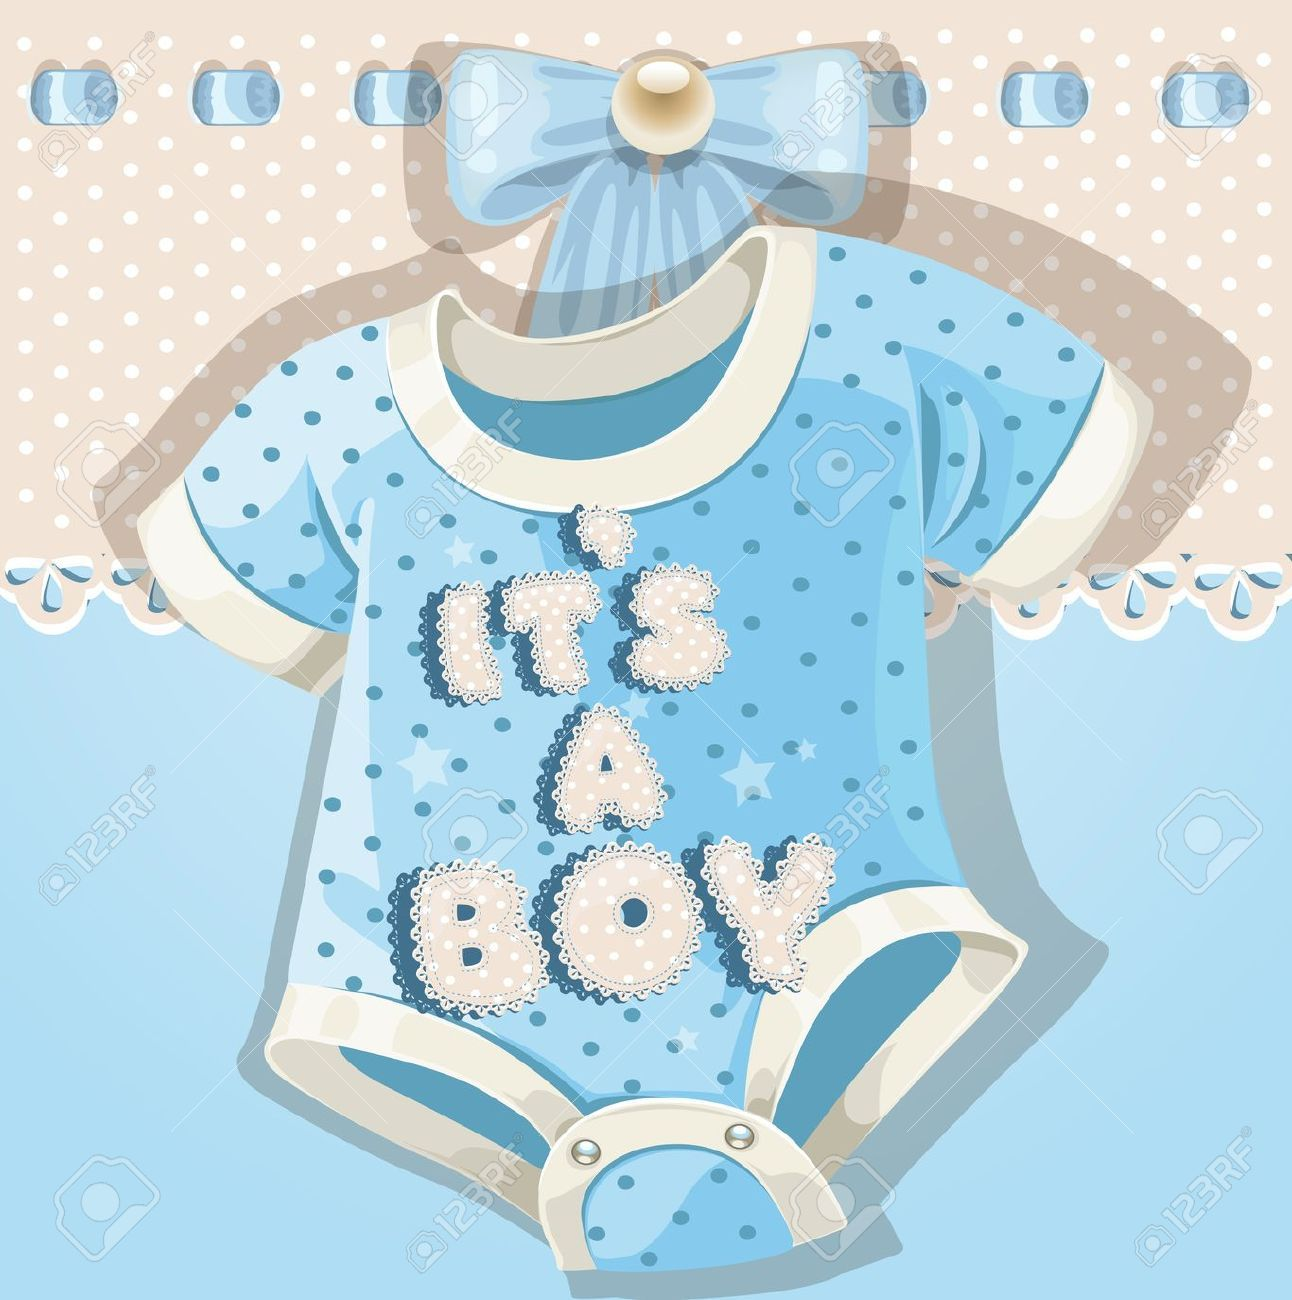 15113402 Baby Shower Blue Card With Baby Shoes